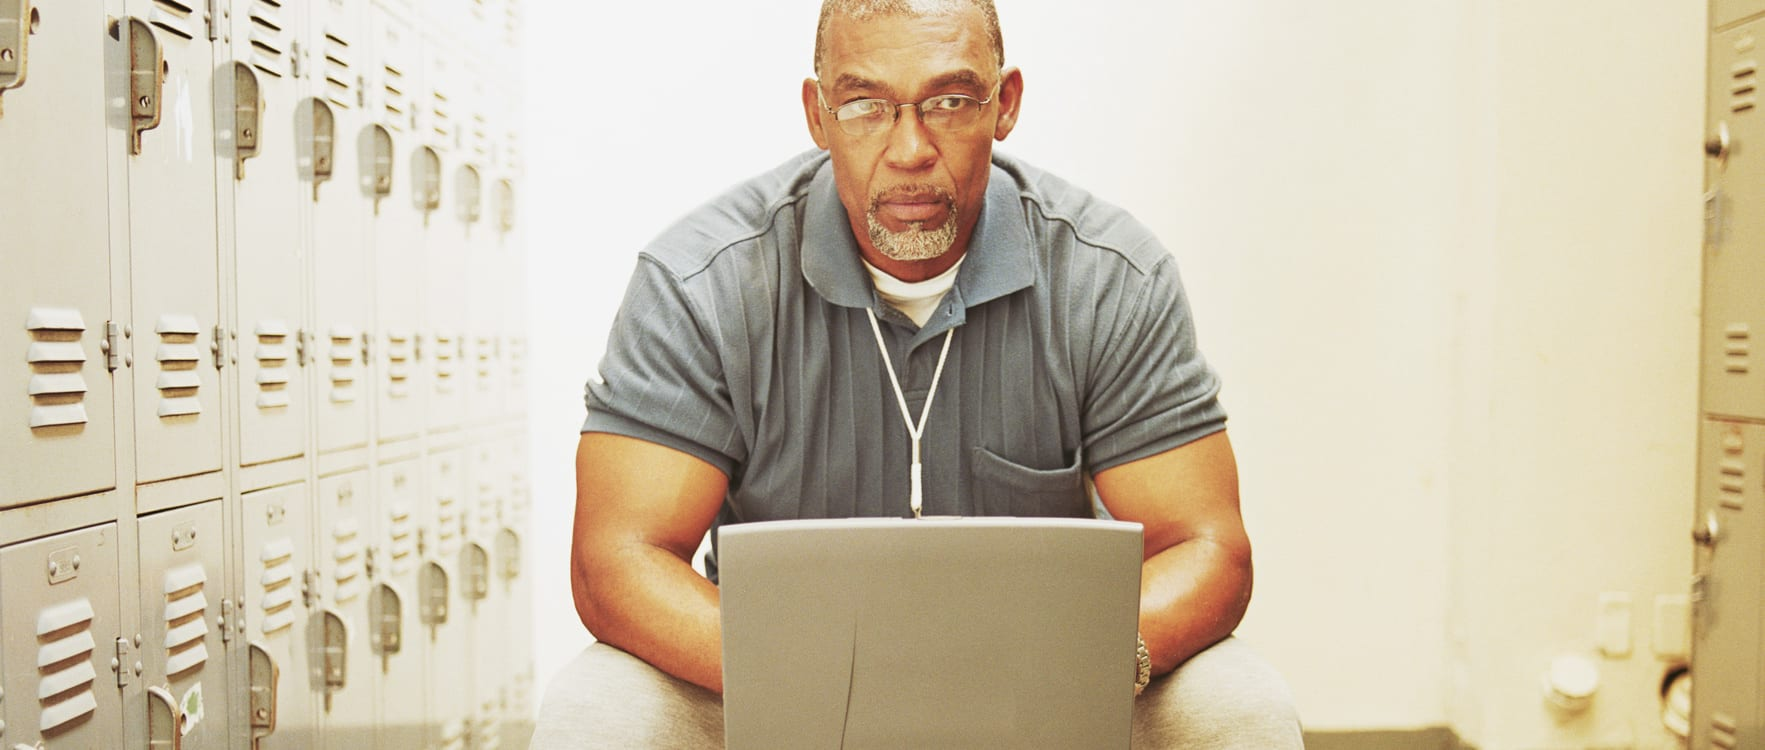 Middle-aged man working on a laptop in a locker room